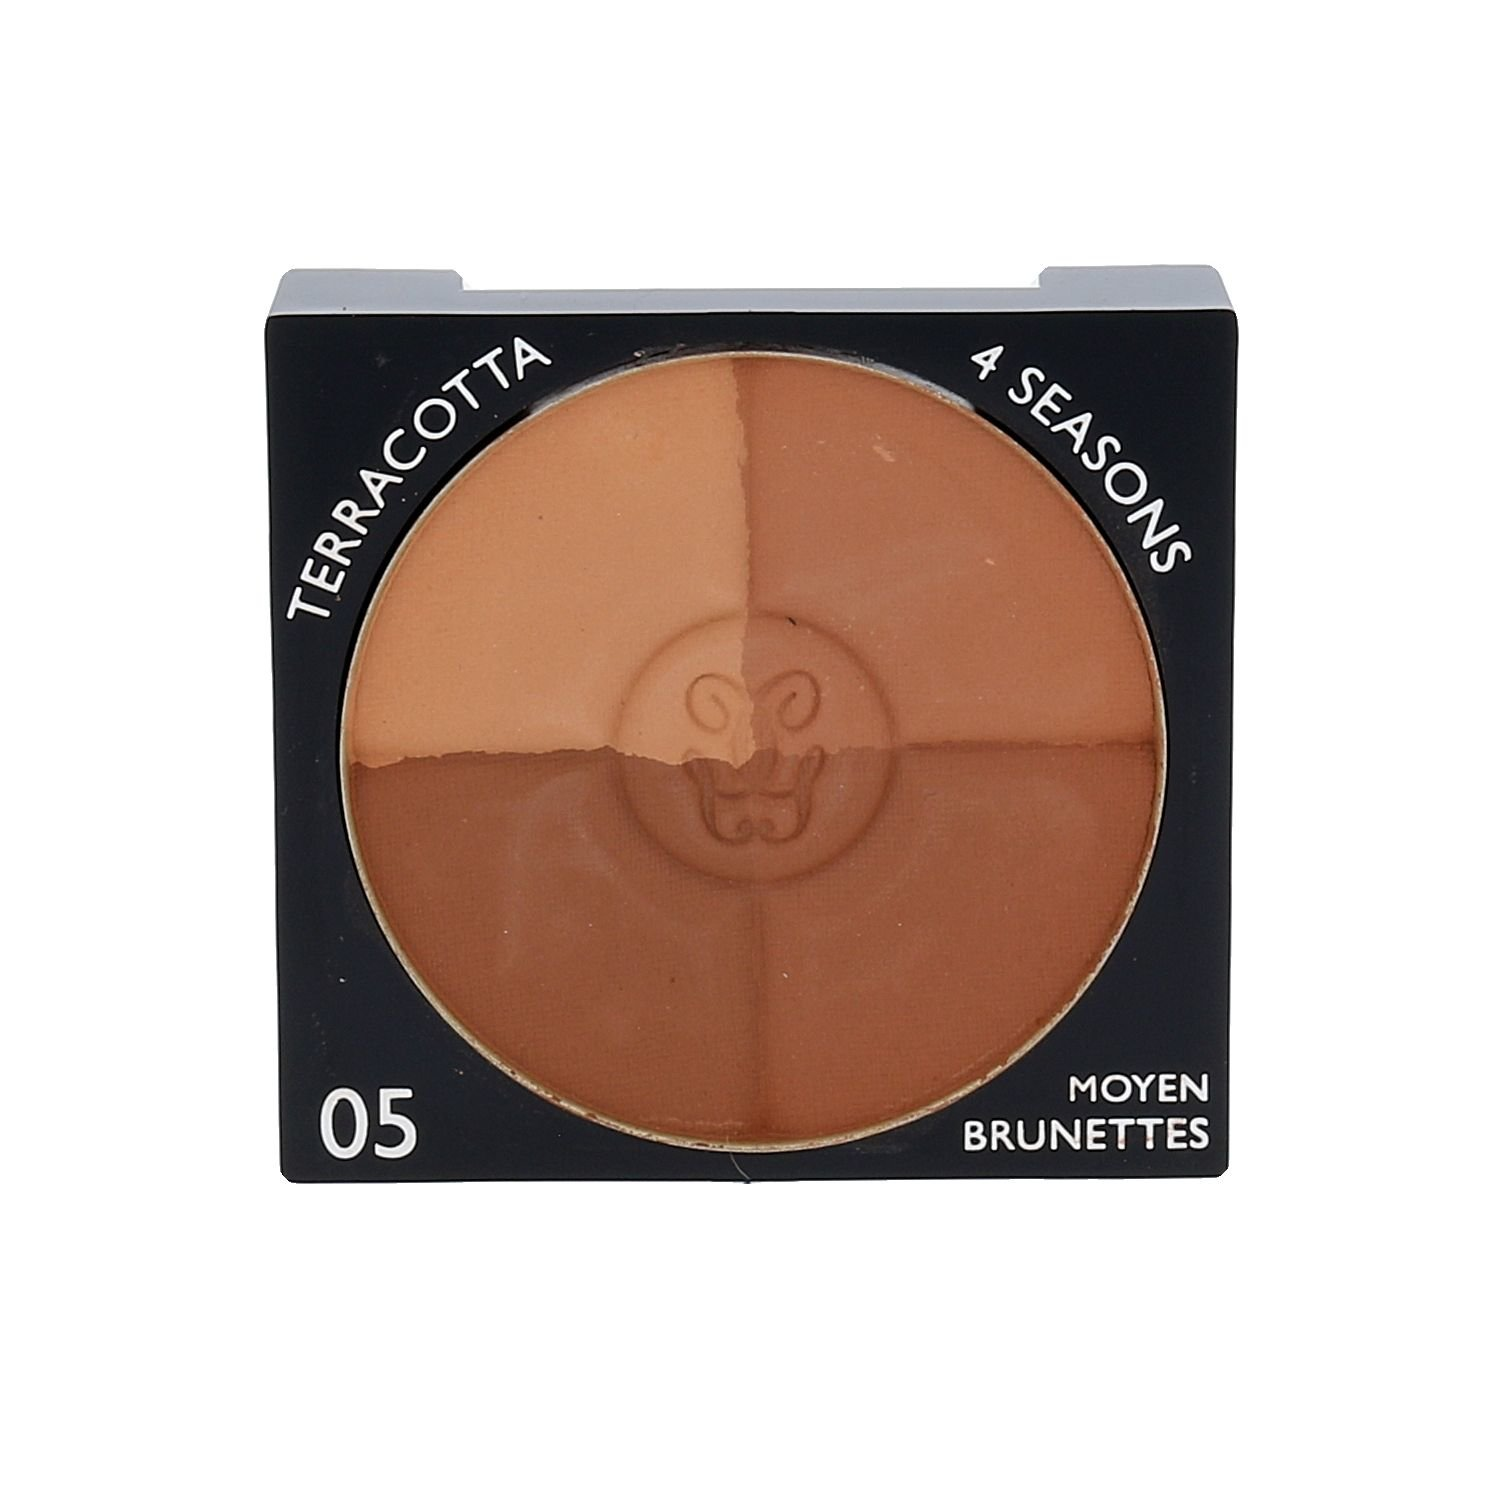 Guerlain Terracotta Cosmetic 5ml 05 Moyen - Brunettes 4 Seasons Bronzing Powder